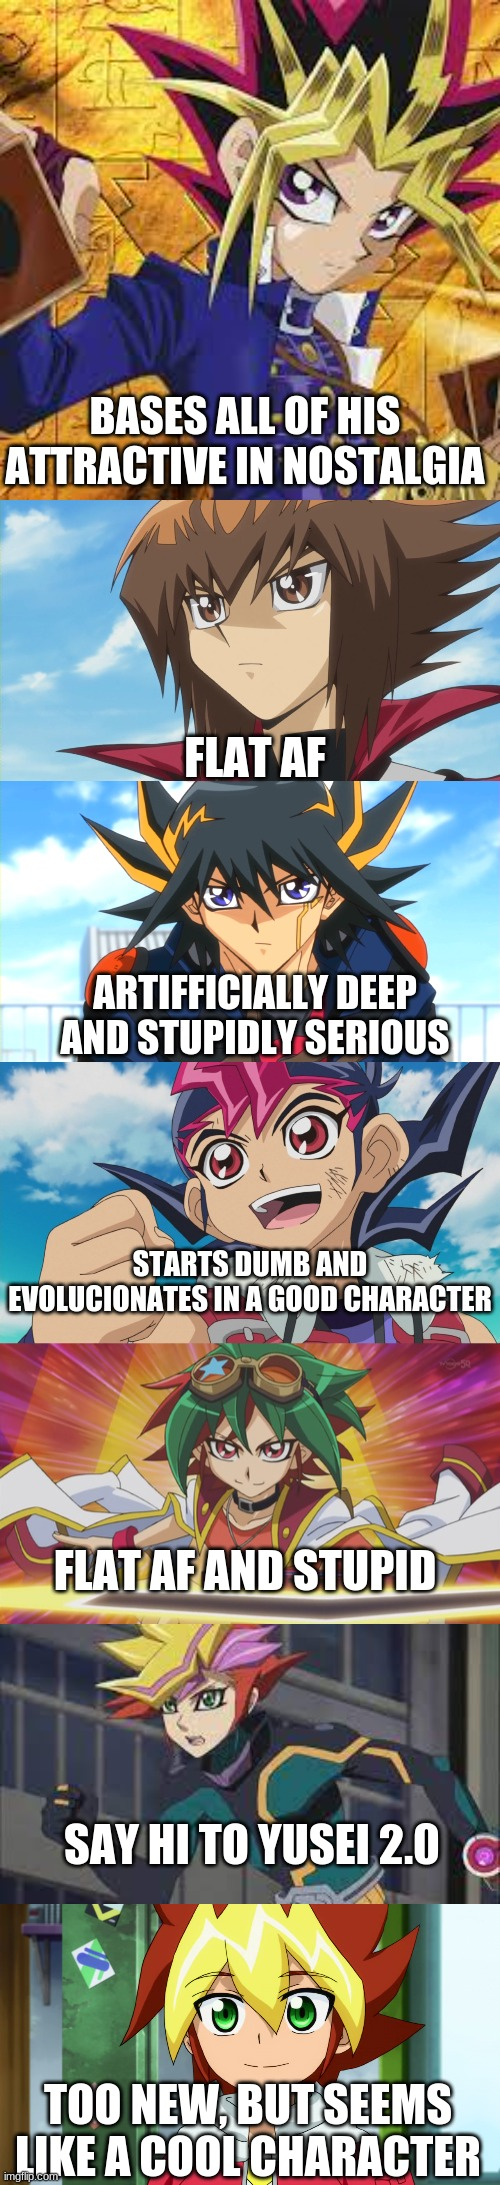 YGO protagonist |  BASES ALL OF HIS ATTRACTIVE IN NOSTALGIA; FLAT AF; ARTIFFICIALLY DEEP AND STUPIDLY SERIOUS; STARTS DUMB AND EVOLUCIONATES IN A GOOD CHARACTER; FLAT AF AND STUPID; SAY HI TO YUSEI 2.0; TOO NEW, BUT SEEMS LIKE A COOL CHARACTER | image tagged in yugioh,funny,memes | made w/ Imgflip meme maker